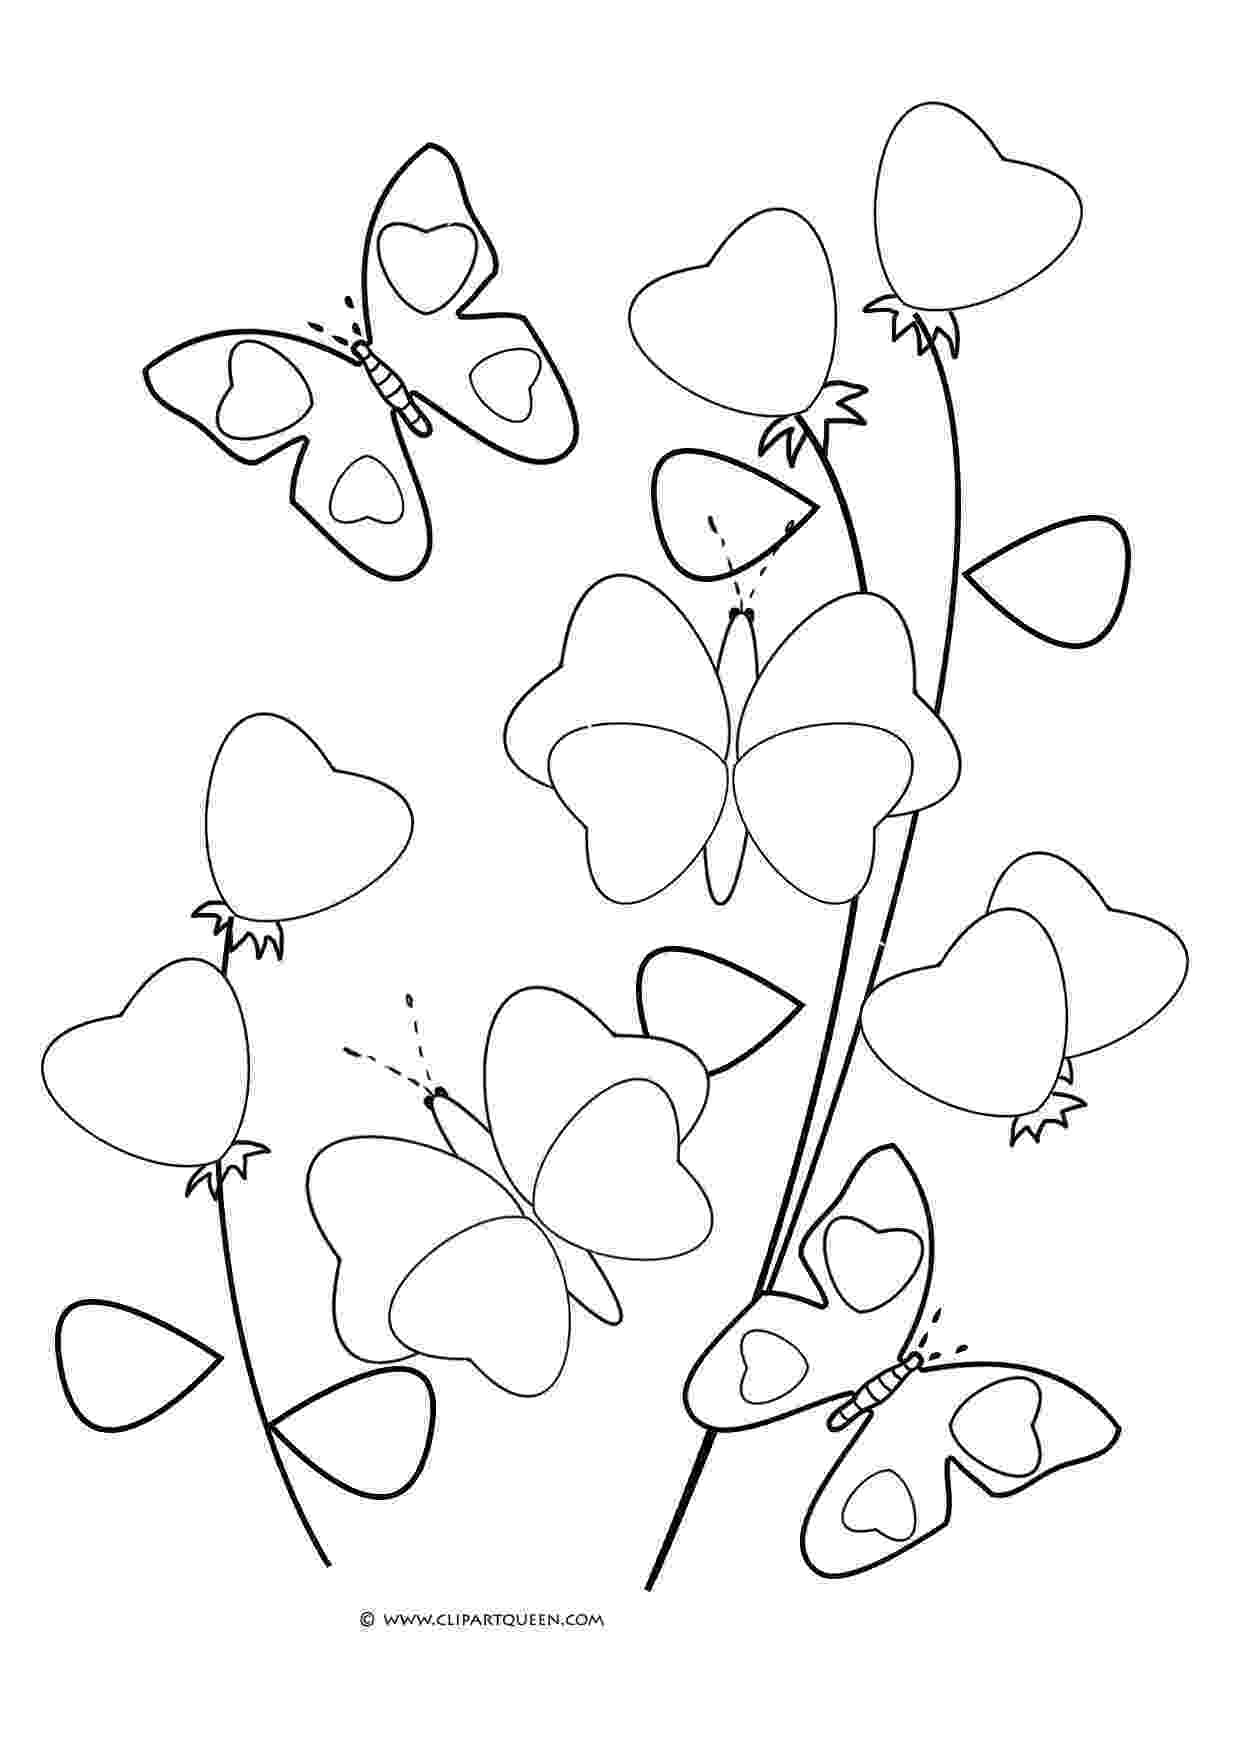 coloring pages of butterflies and flowers coloring pages of flowers and butterflies c l r the coloring flowers and butterflies pages of